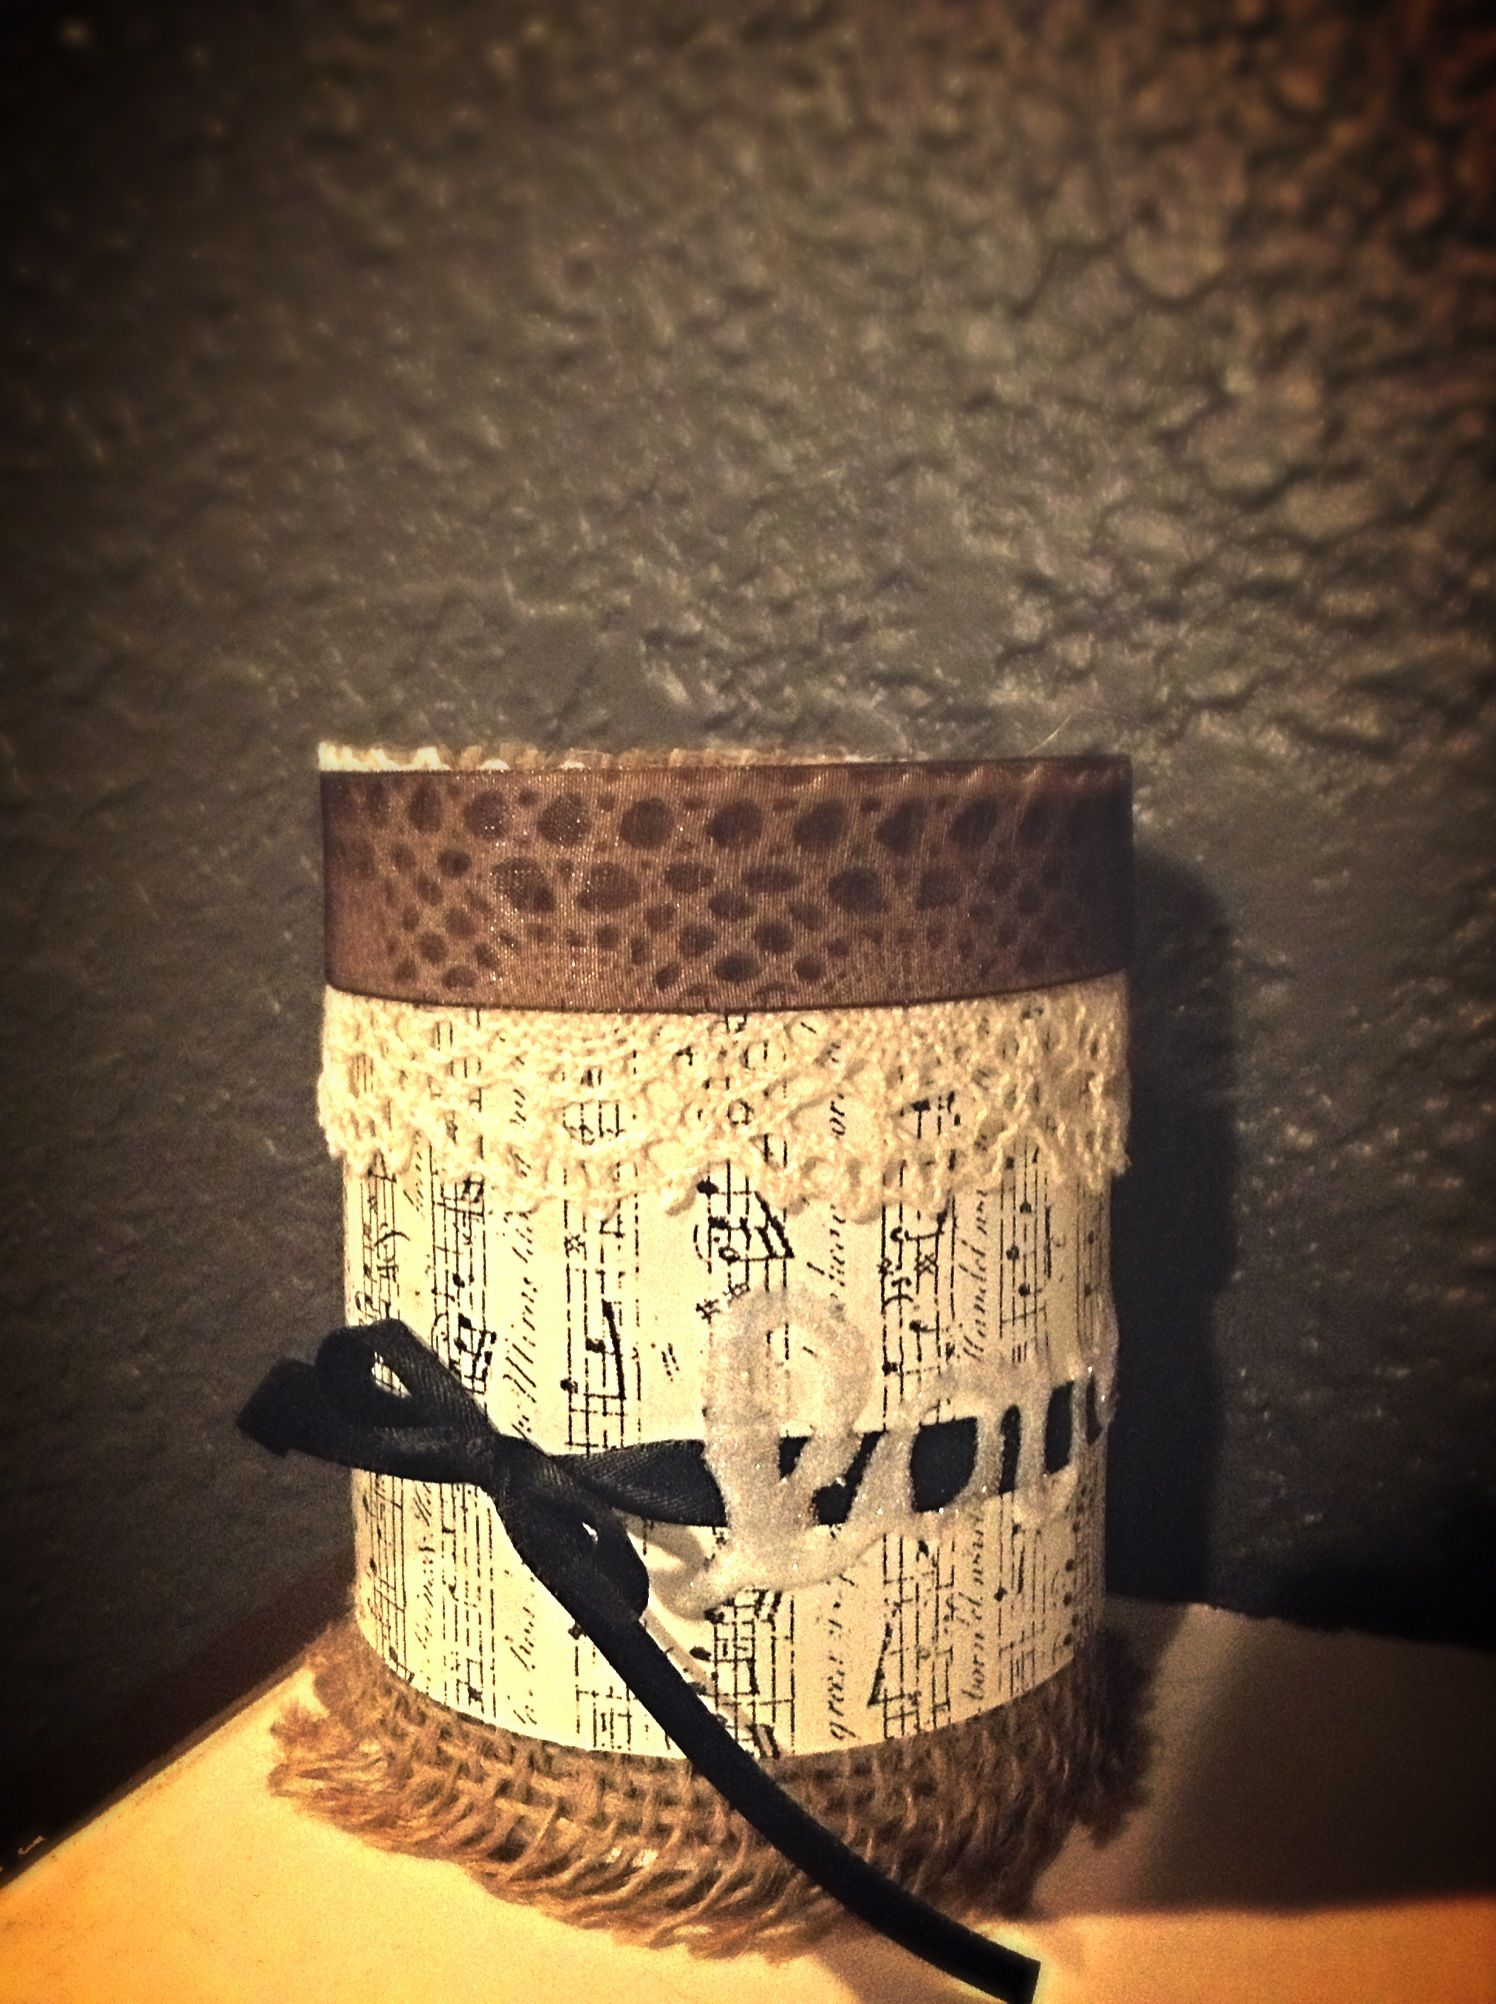 """Shabby chic decorated tin can. """"Love"""" written in glitter on the side. Going to use it for pens and pencils :)"""